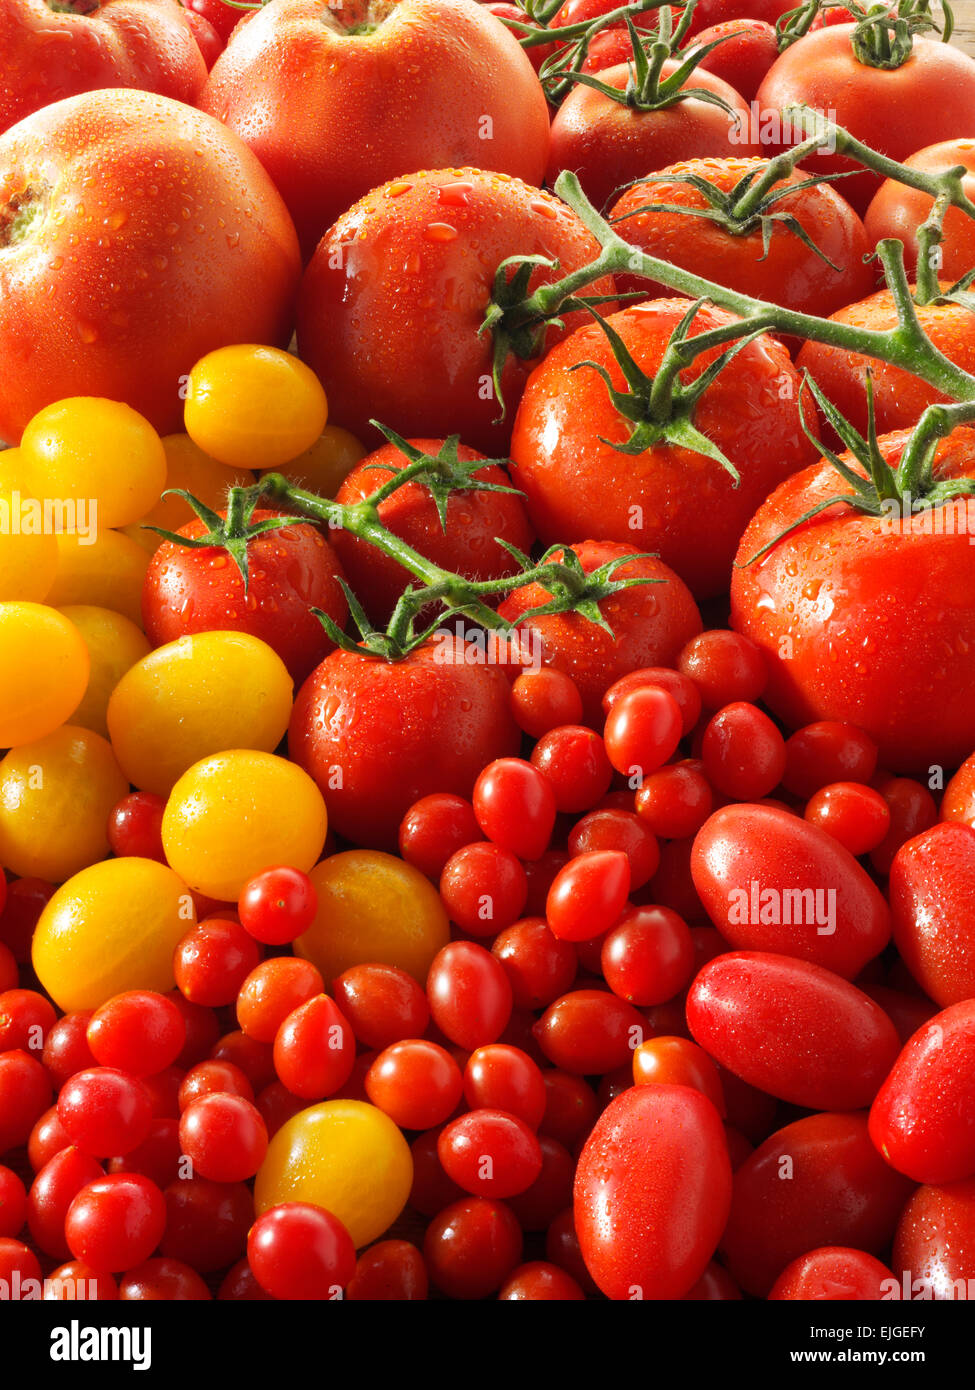 mixed fresh whole tomatoes Stock Photo